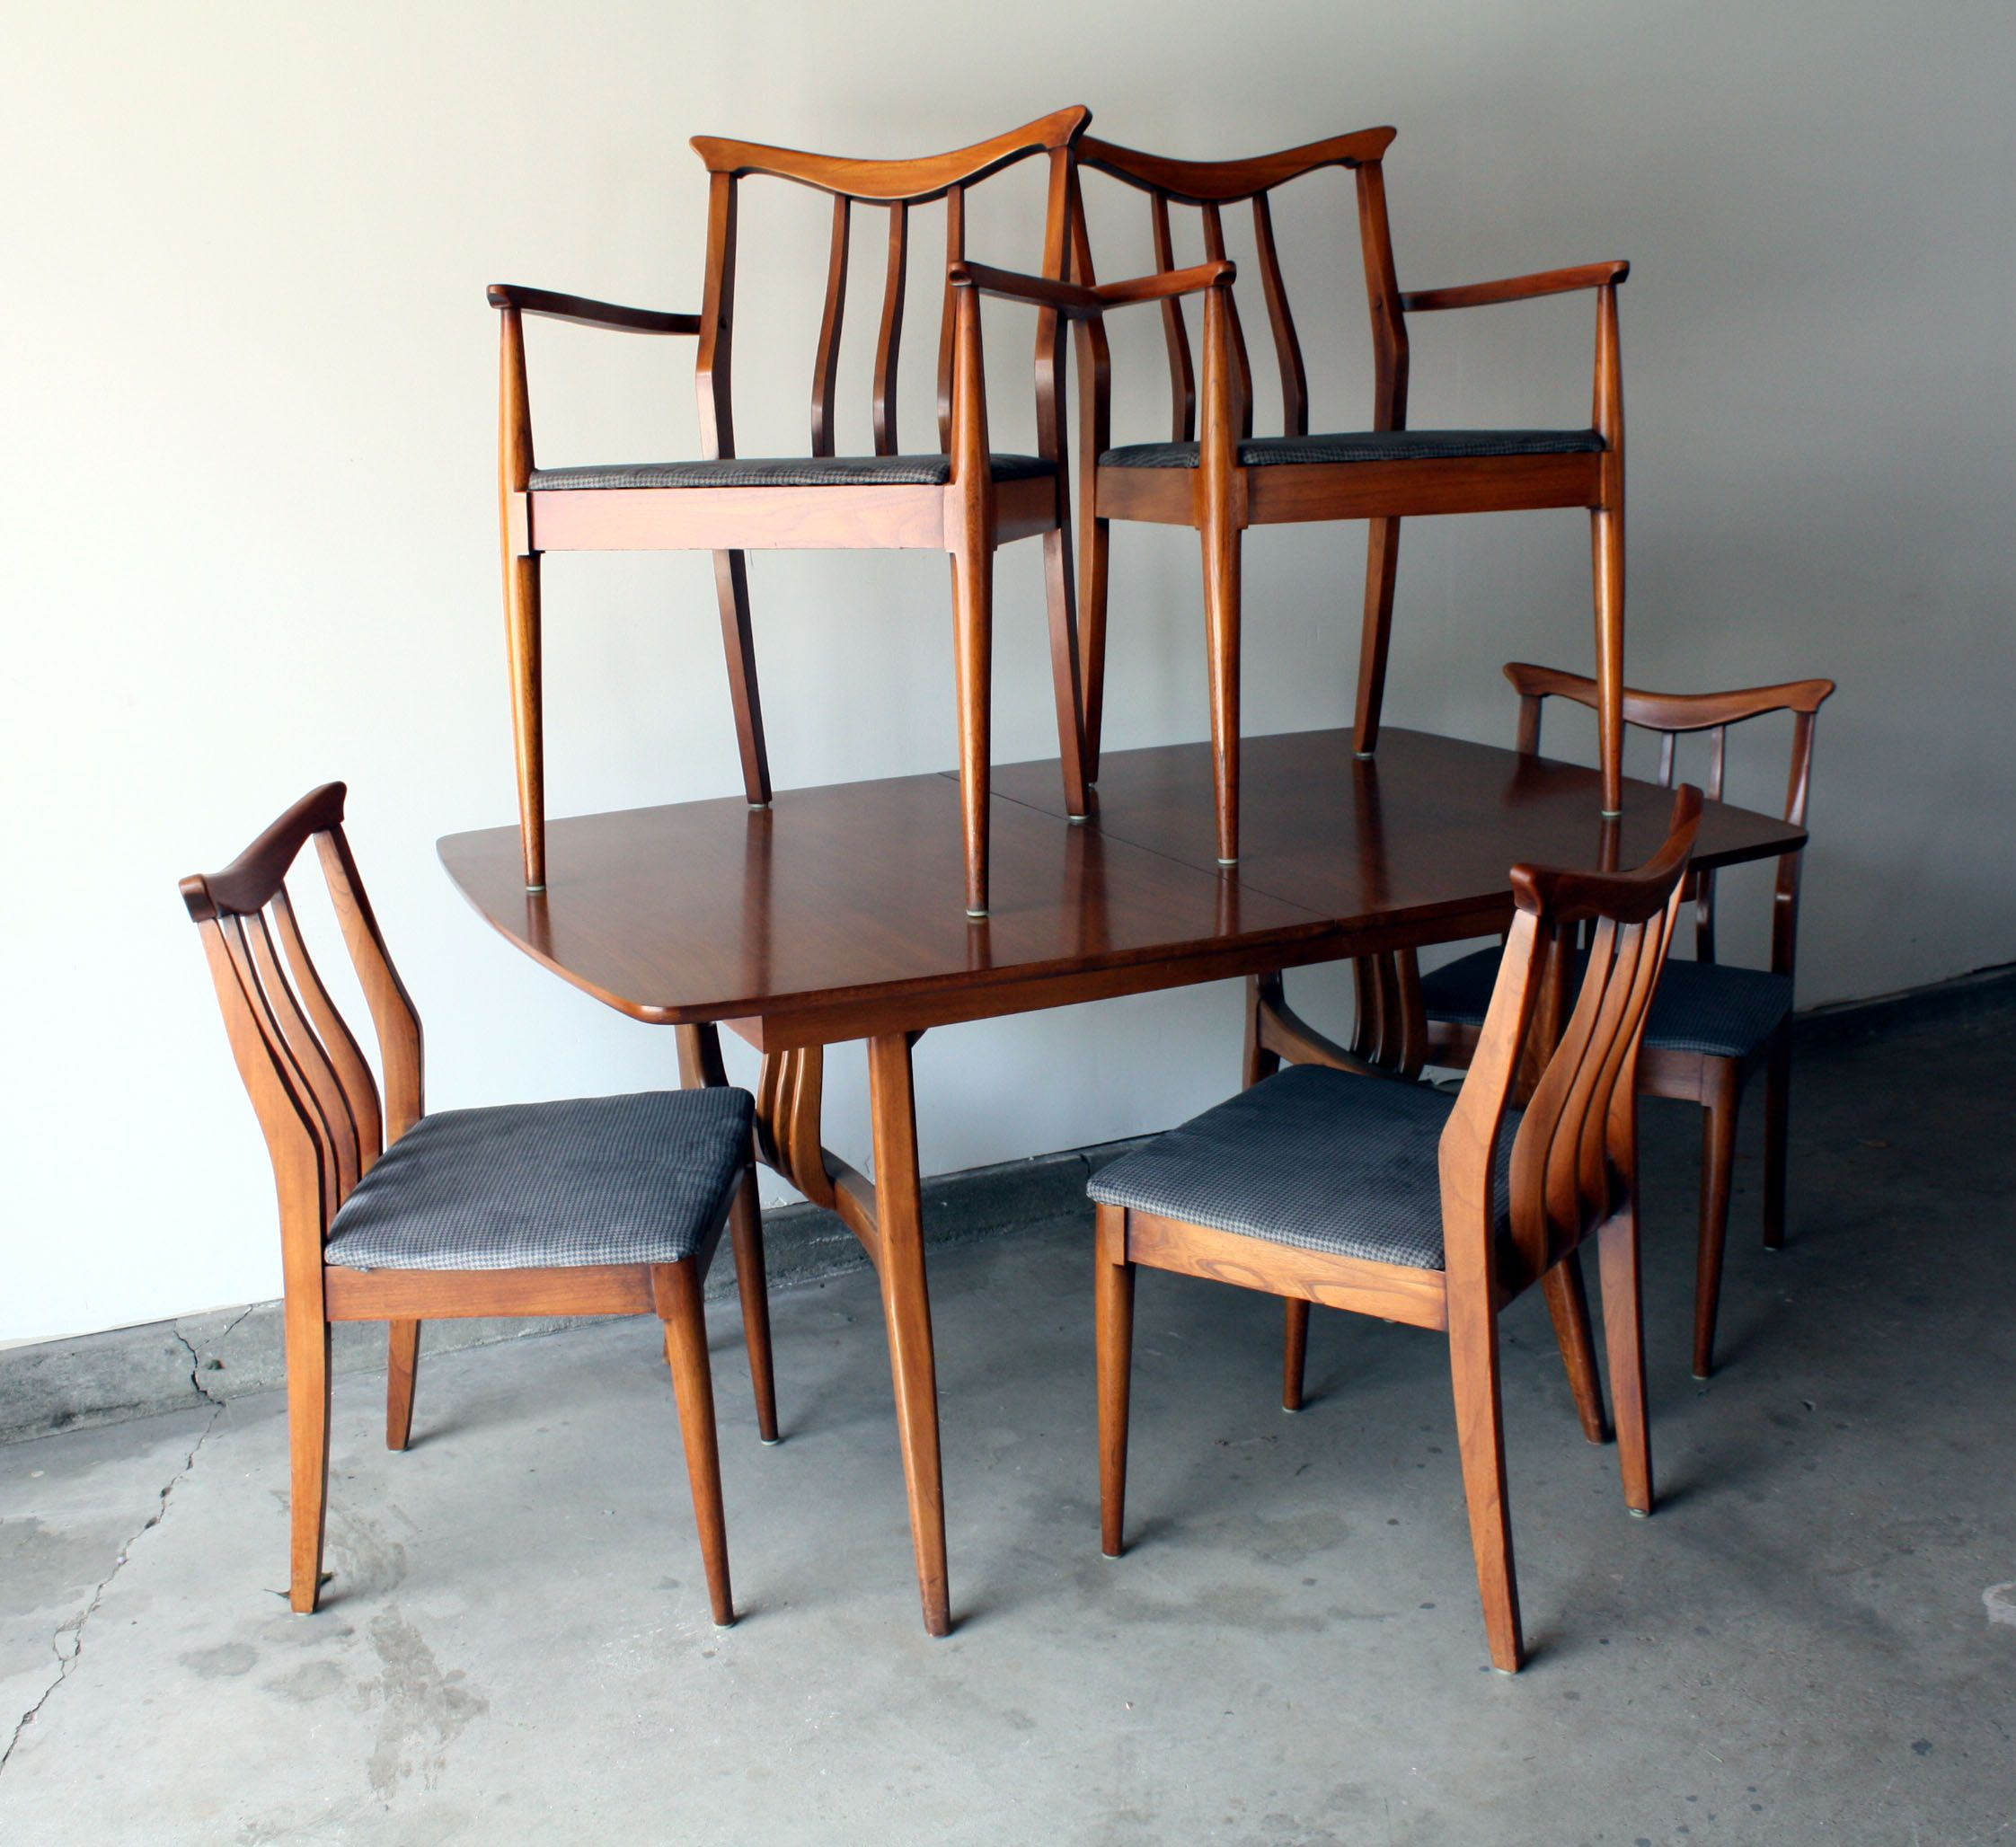 1960s Mid Century Modern Dining Set Table and Chairs